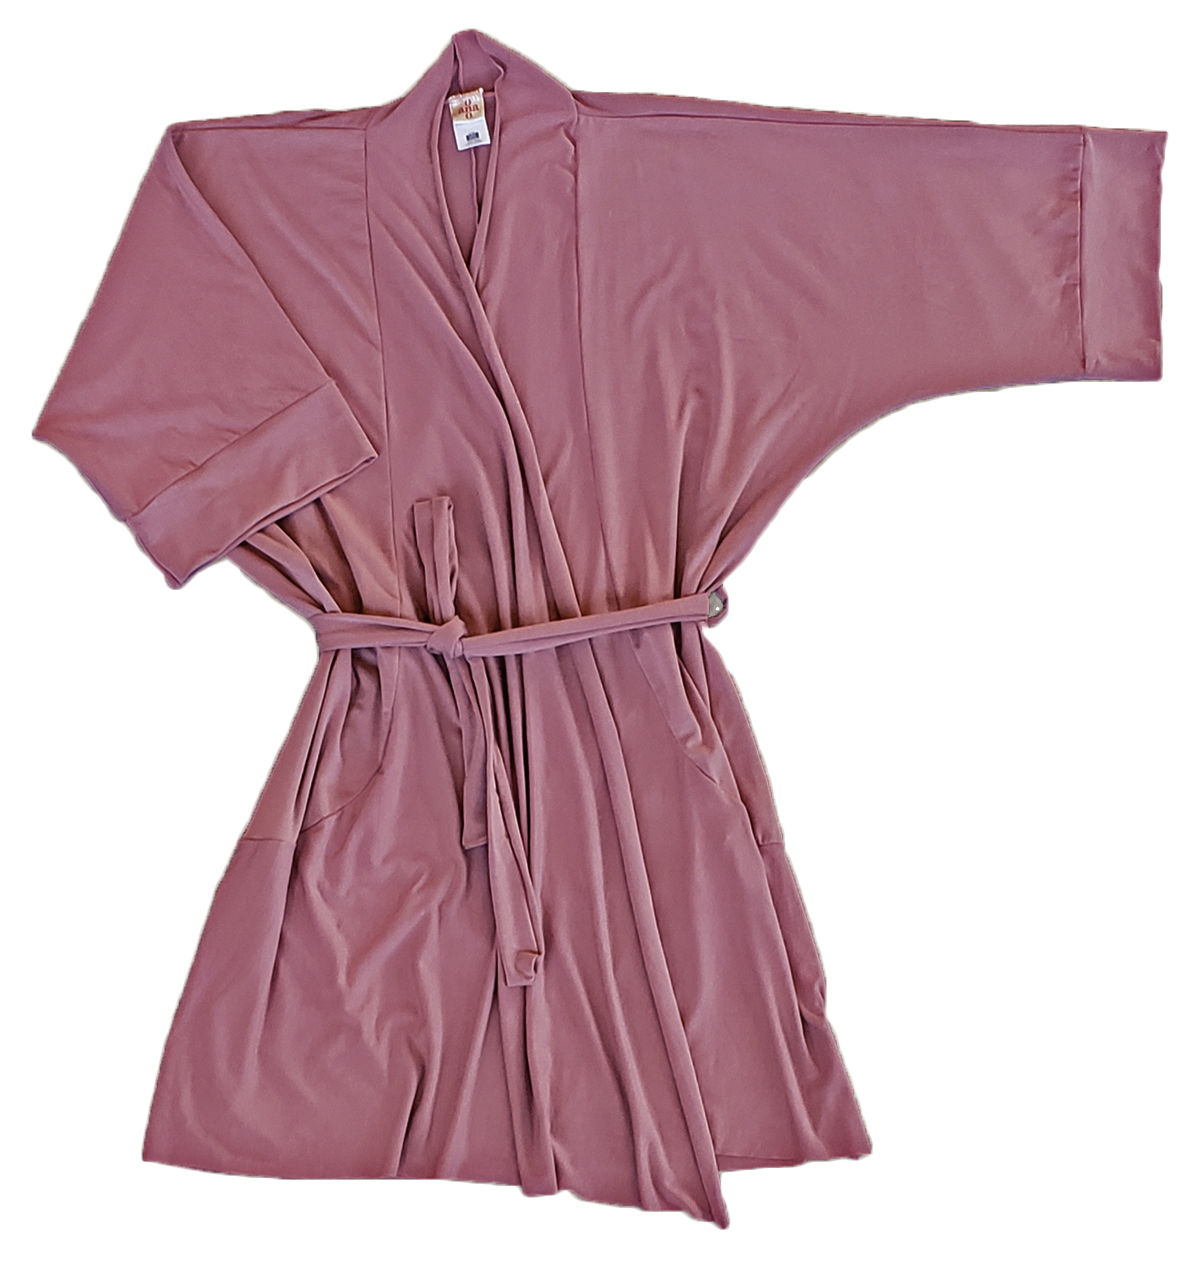 Gifts that give back - Anaono Miena Robe